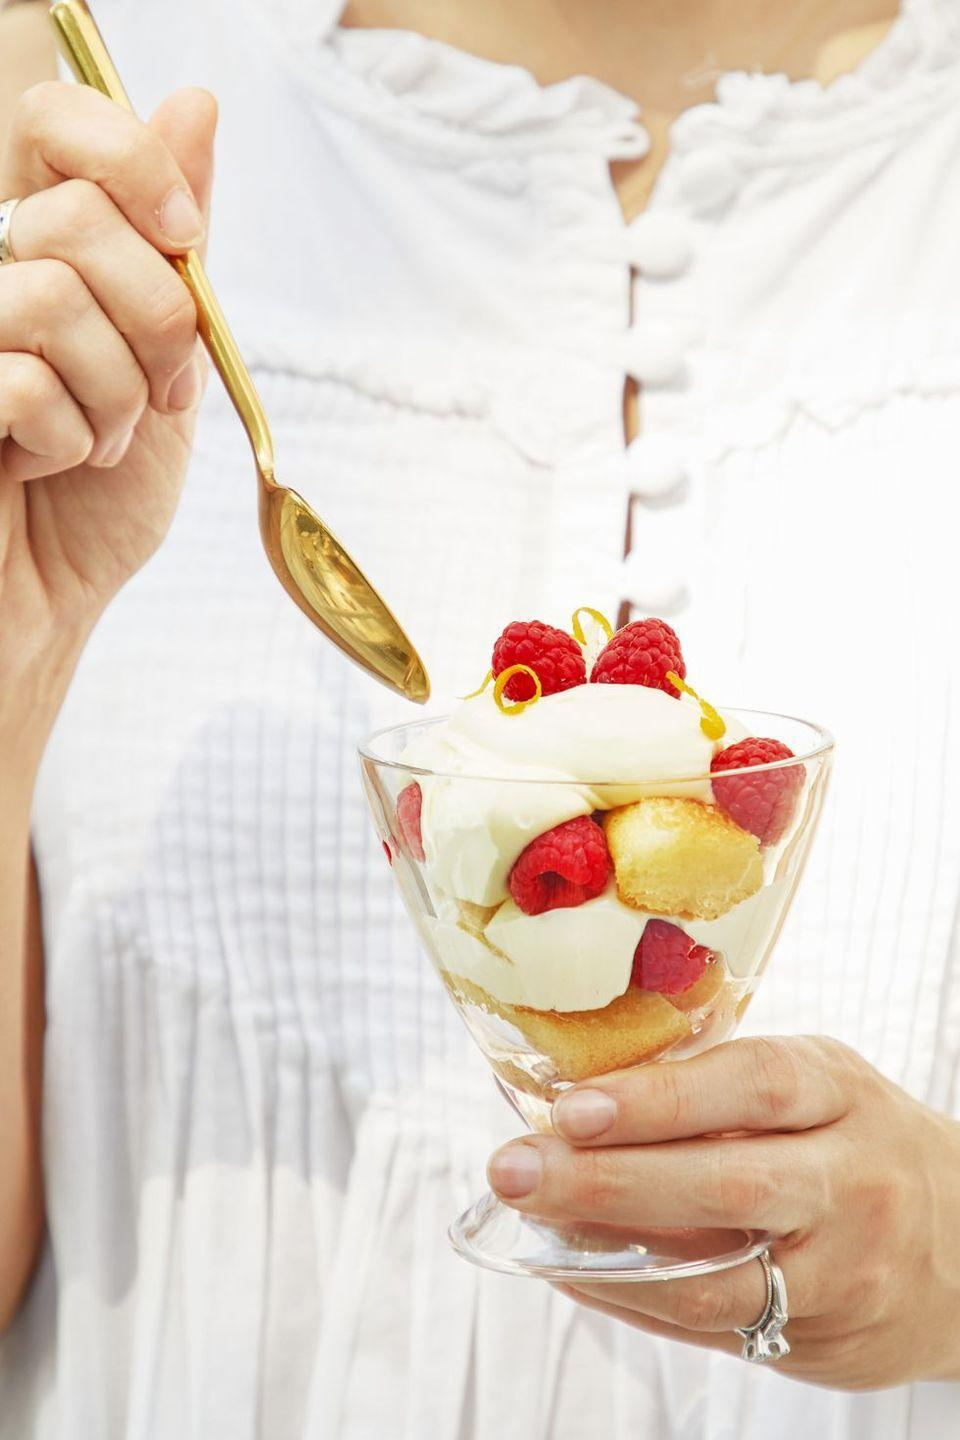 """<p>Pop these no-bake parfaits in the fridge until you're ready to wow your guests.</p><p><em><a href=""""https://www.goodhousekeeping.com/food-recipes/dessert/a22577243/lemon-mascarpone-parfaits-recipe/"""" rel=""""nofollow noopener"""" target=""""_blank"""" data-ylk=""""slk:Get the recipe for Lemon Mascarpone Parfaits »"""" class=""""link rapid-noclick-resp"""">Get the recipe for Lemon Mascarpone Parfaits »</a></em></p>"""